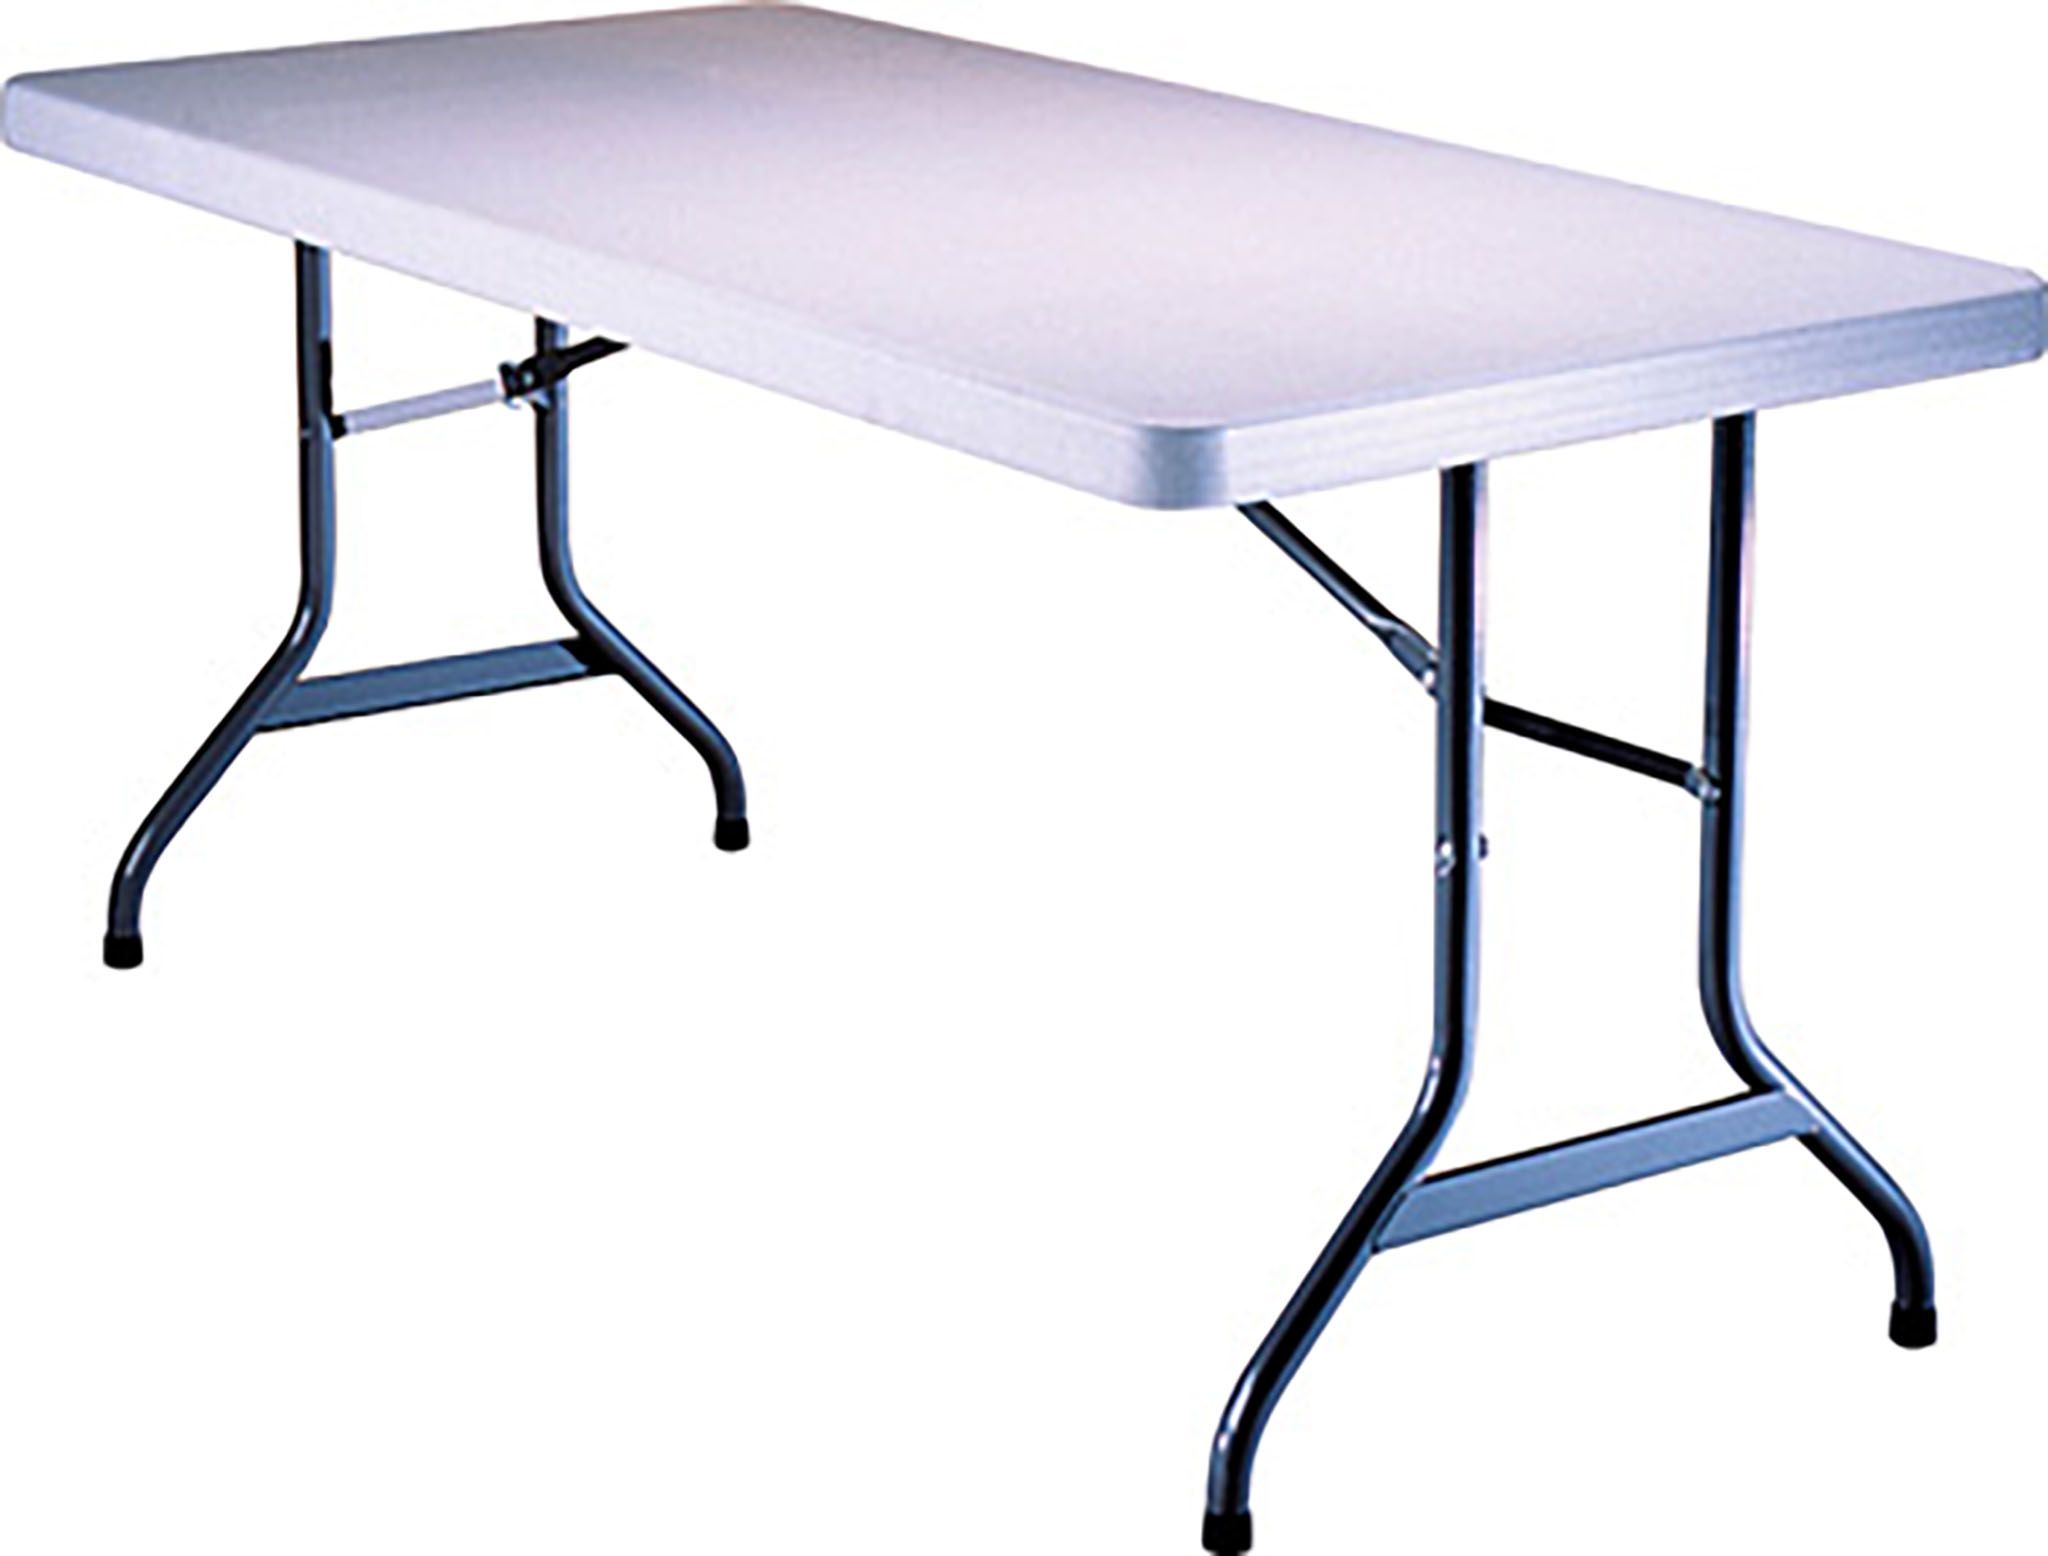 28 4 ft plastic folding table duragood 4 foot rectangular for 10 foot folding table